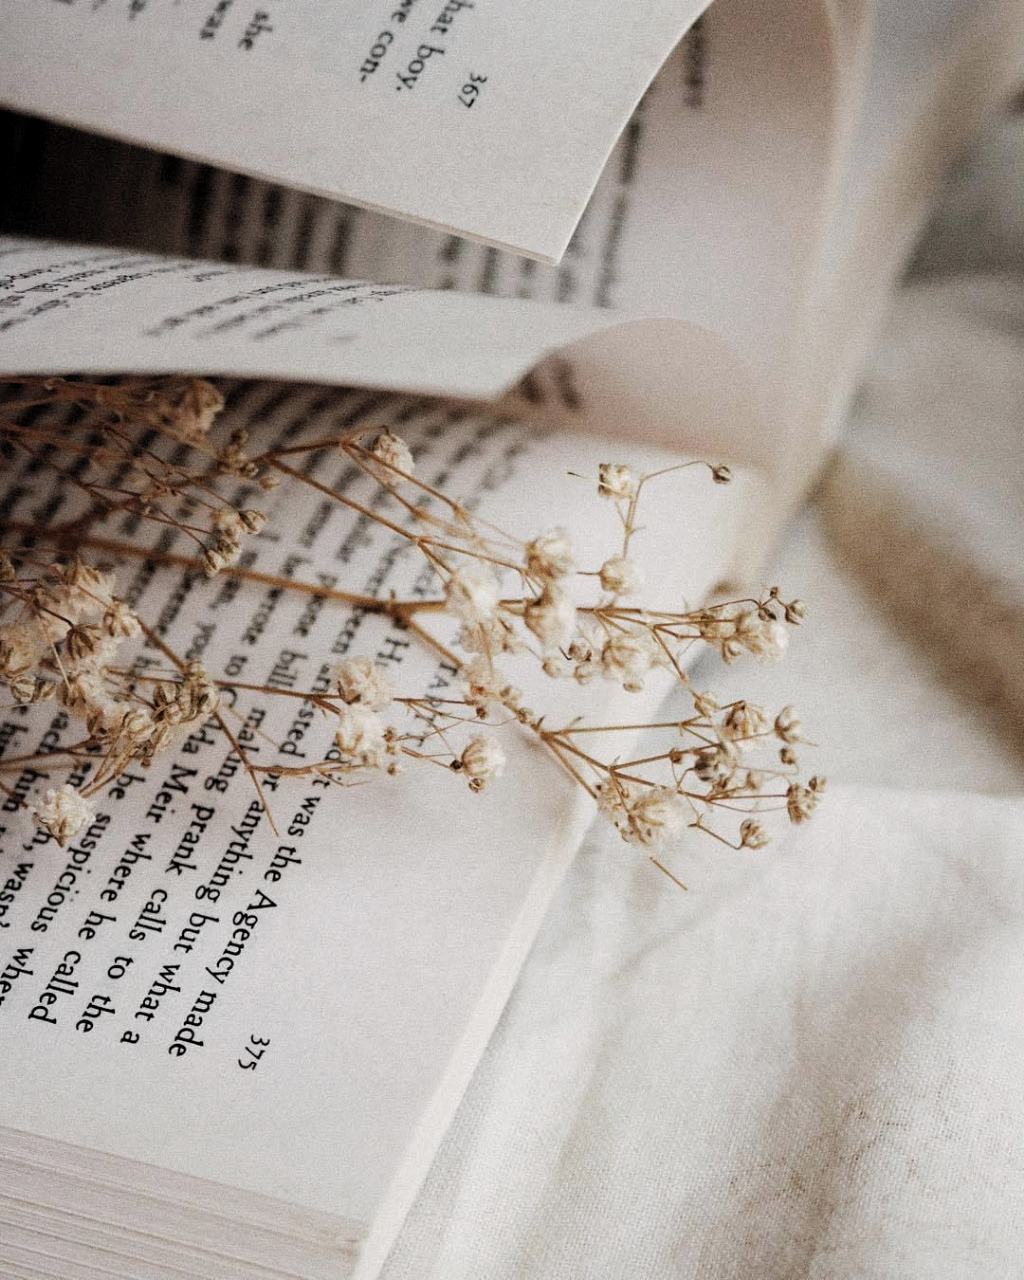 Introverted Bookworm In 2020 Book Aesthetic Book Photography Book Wallpaper